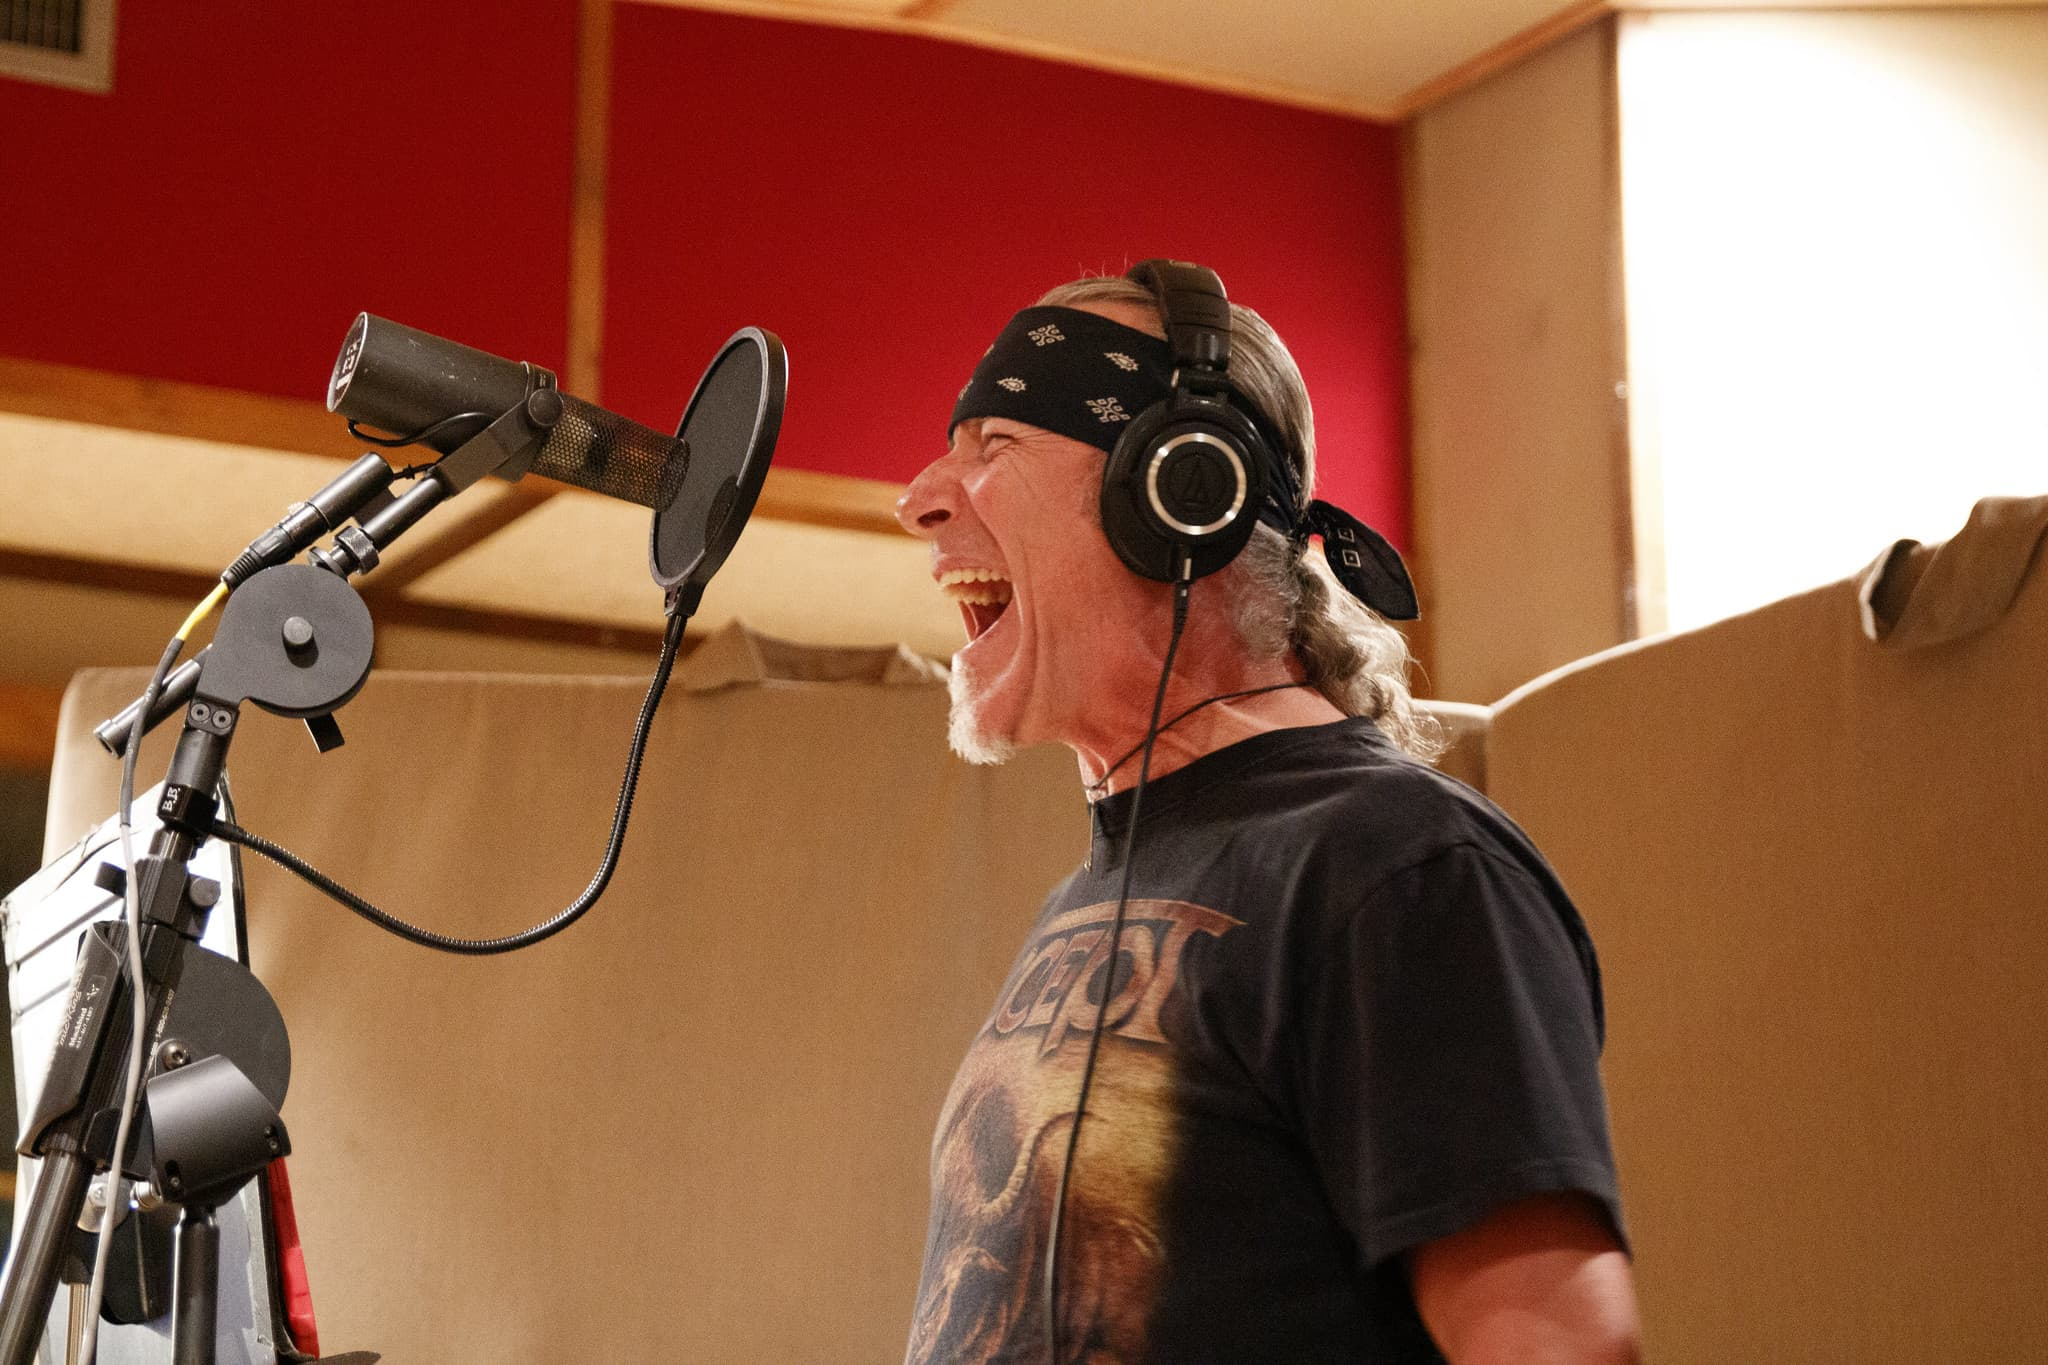 Charlie tracking vocals, singing into mic